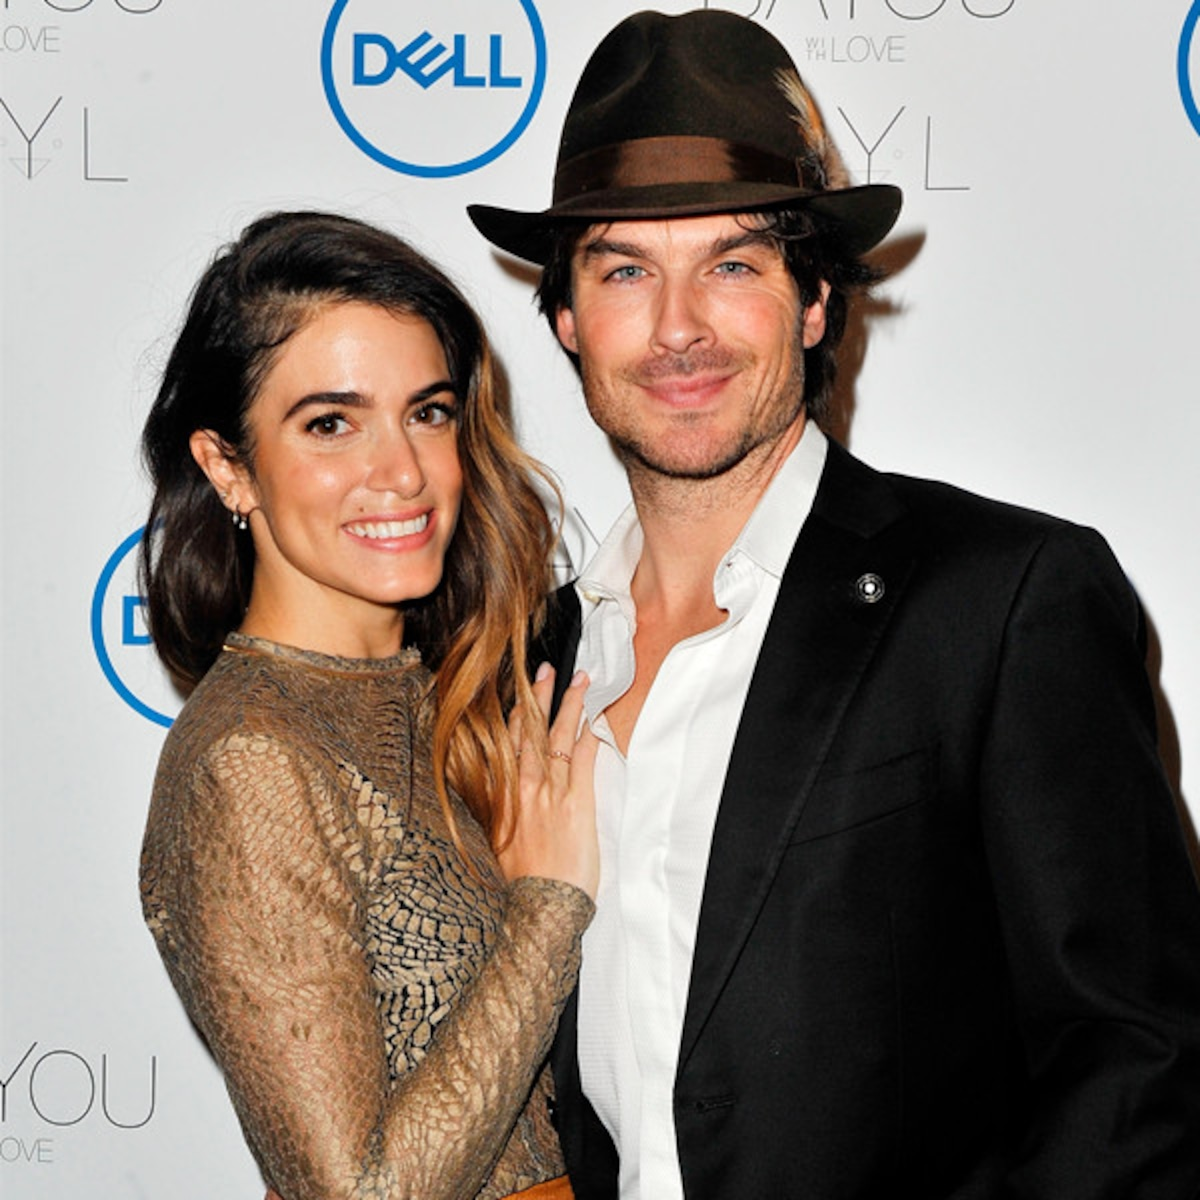 Is nikki reed who 'The Vampire